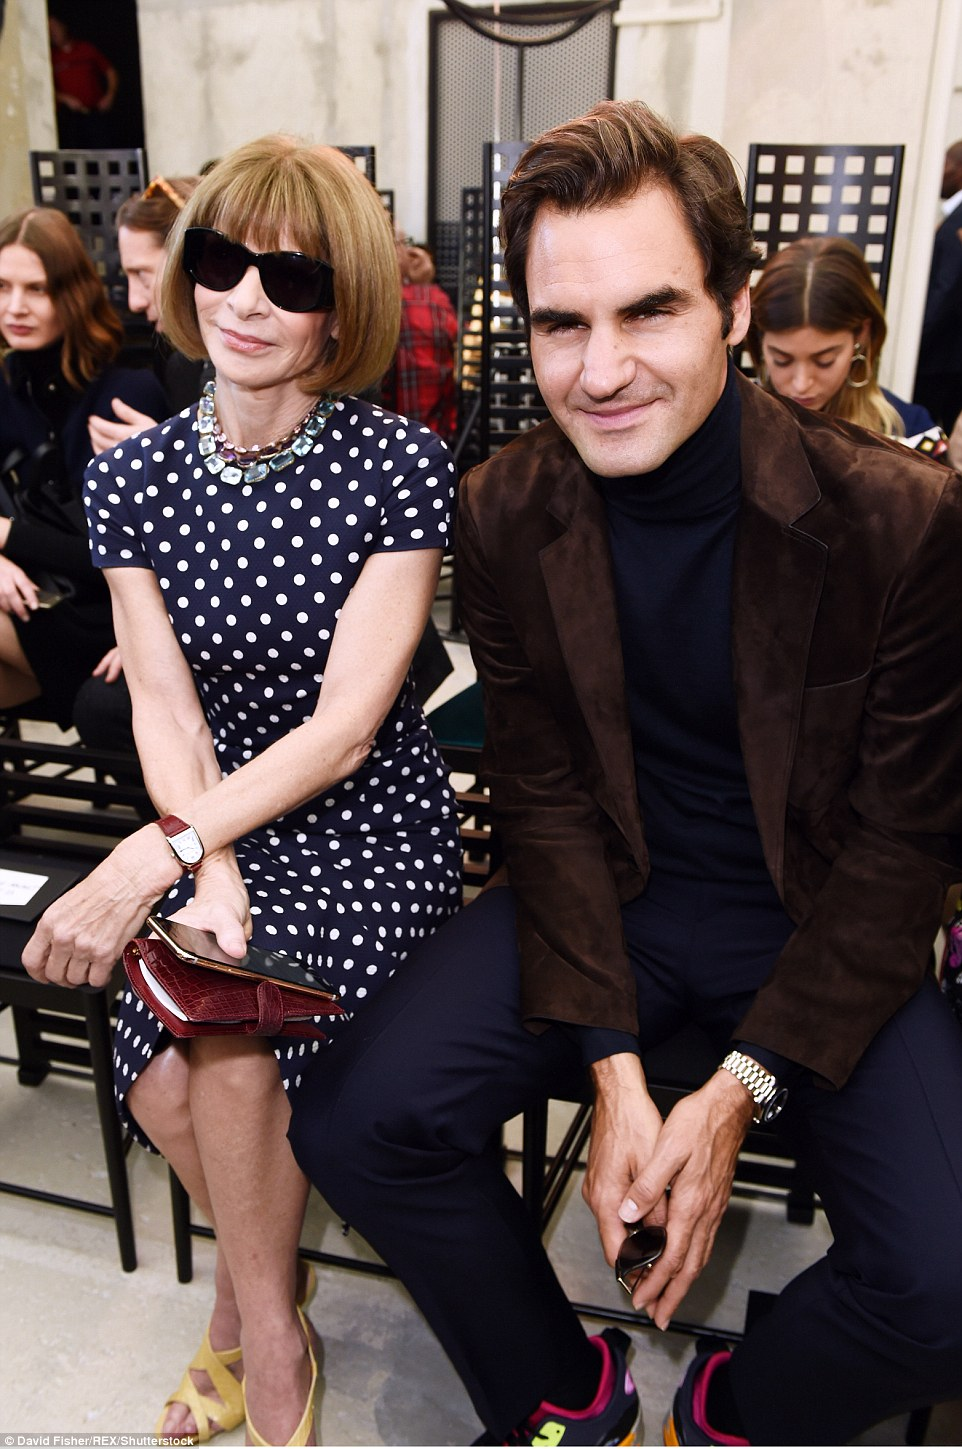 Shoe-business: He sat alongside American Vogue Editor-in-chief Anna Wintour who wore a polka dot dress and yellow Manolo Blahniks, while Federer stuck to Nike Air trainers